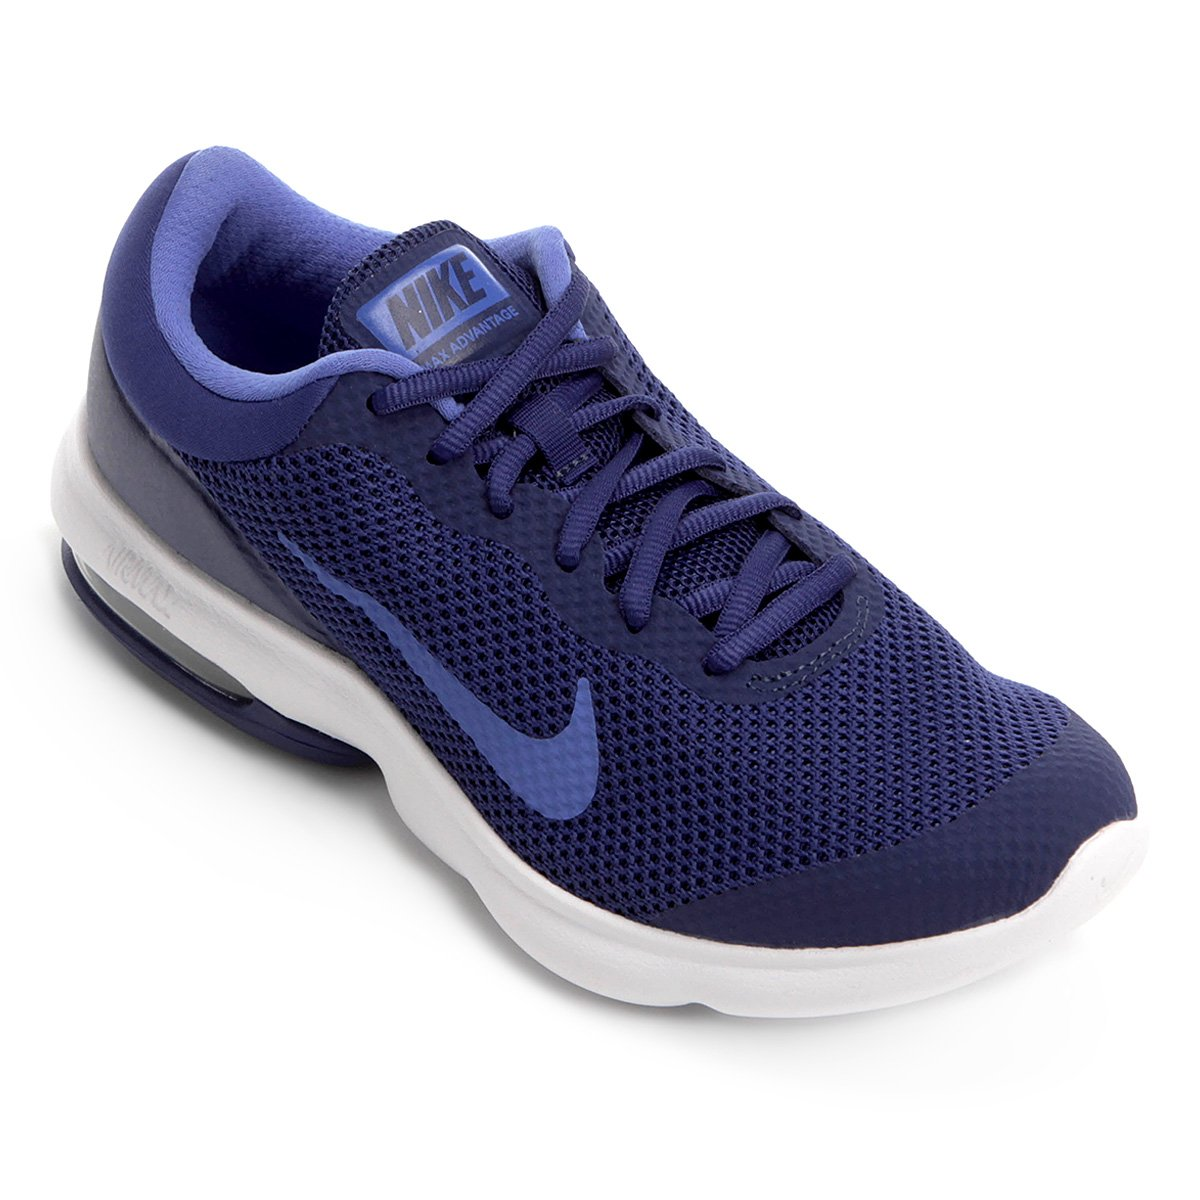 Chaussures Nike Suppléments Netshoes Femmes Air Max 2015